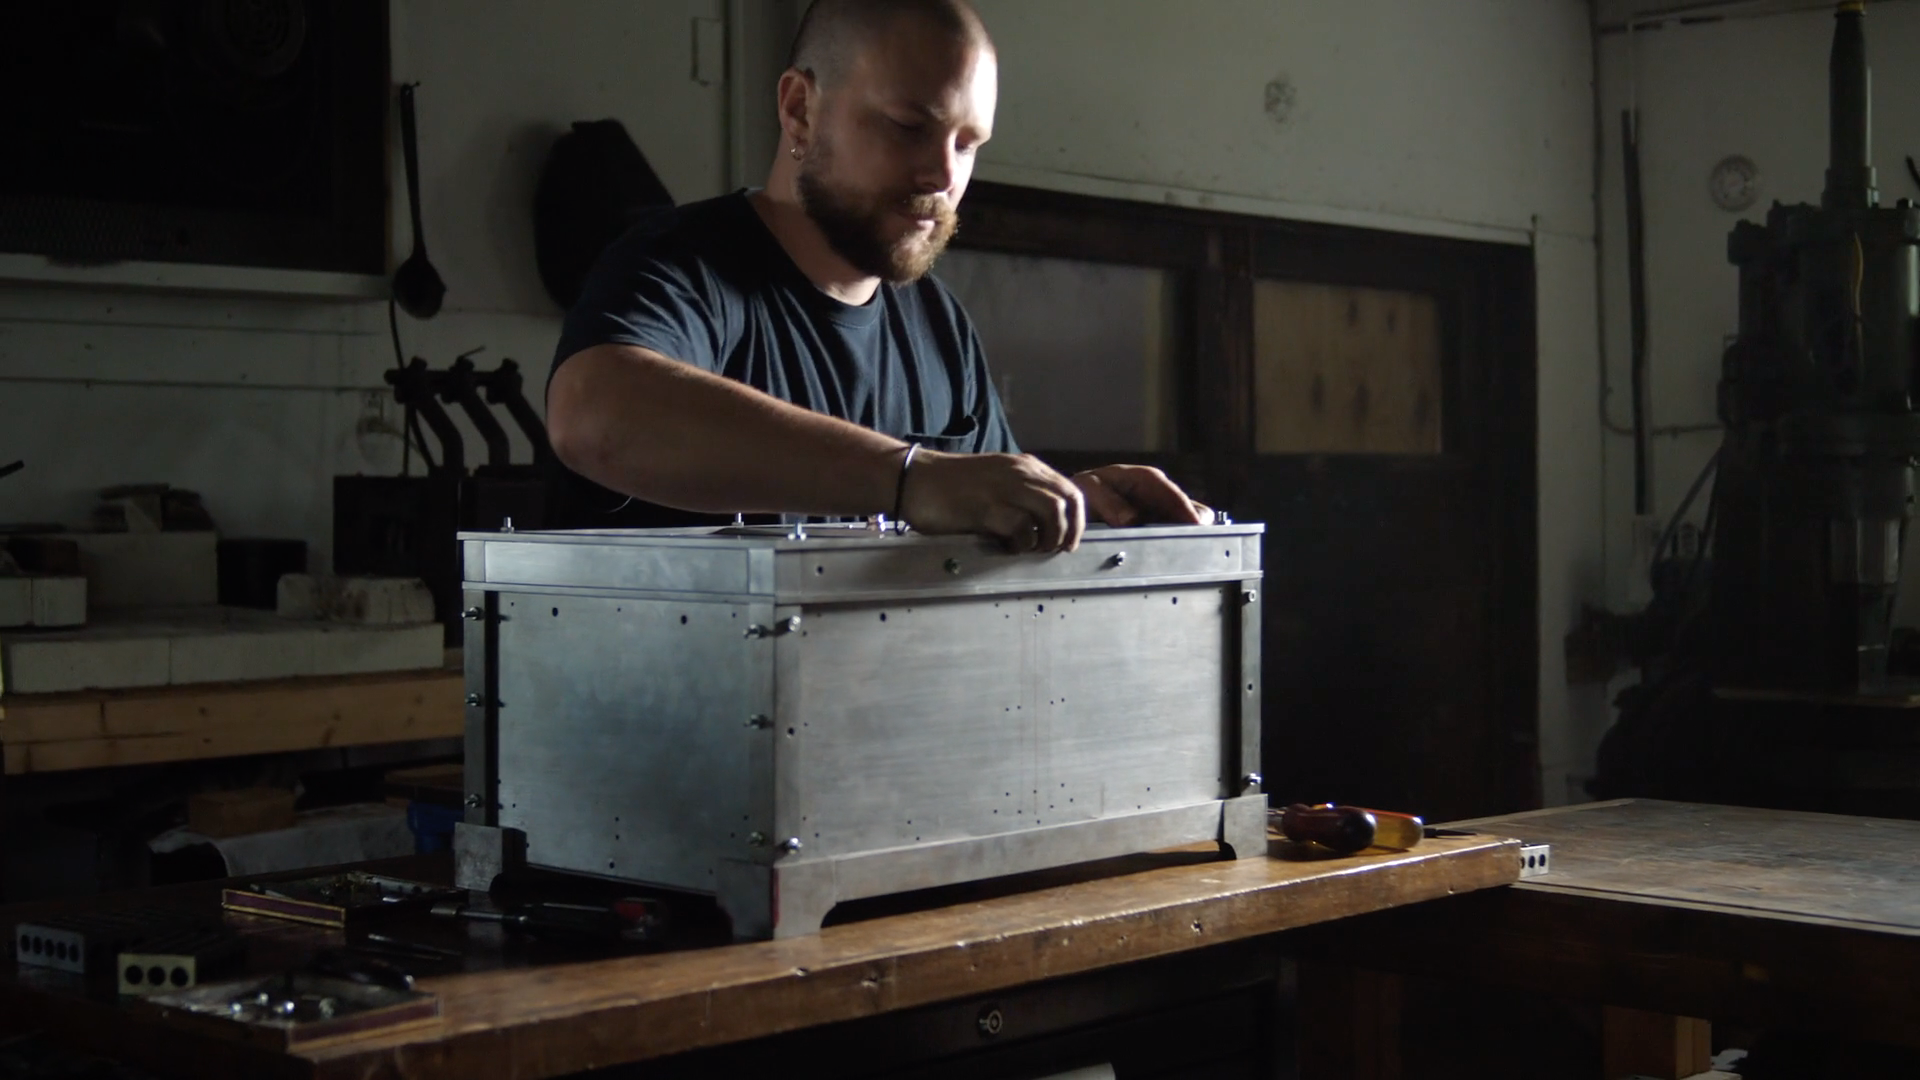 Watch the creation of a magic box in the extremely satisfying Forged and Filed